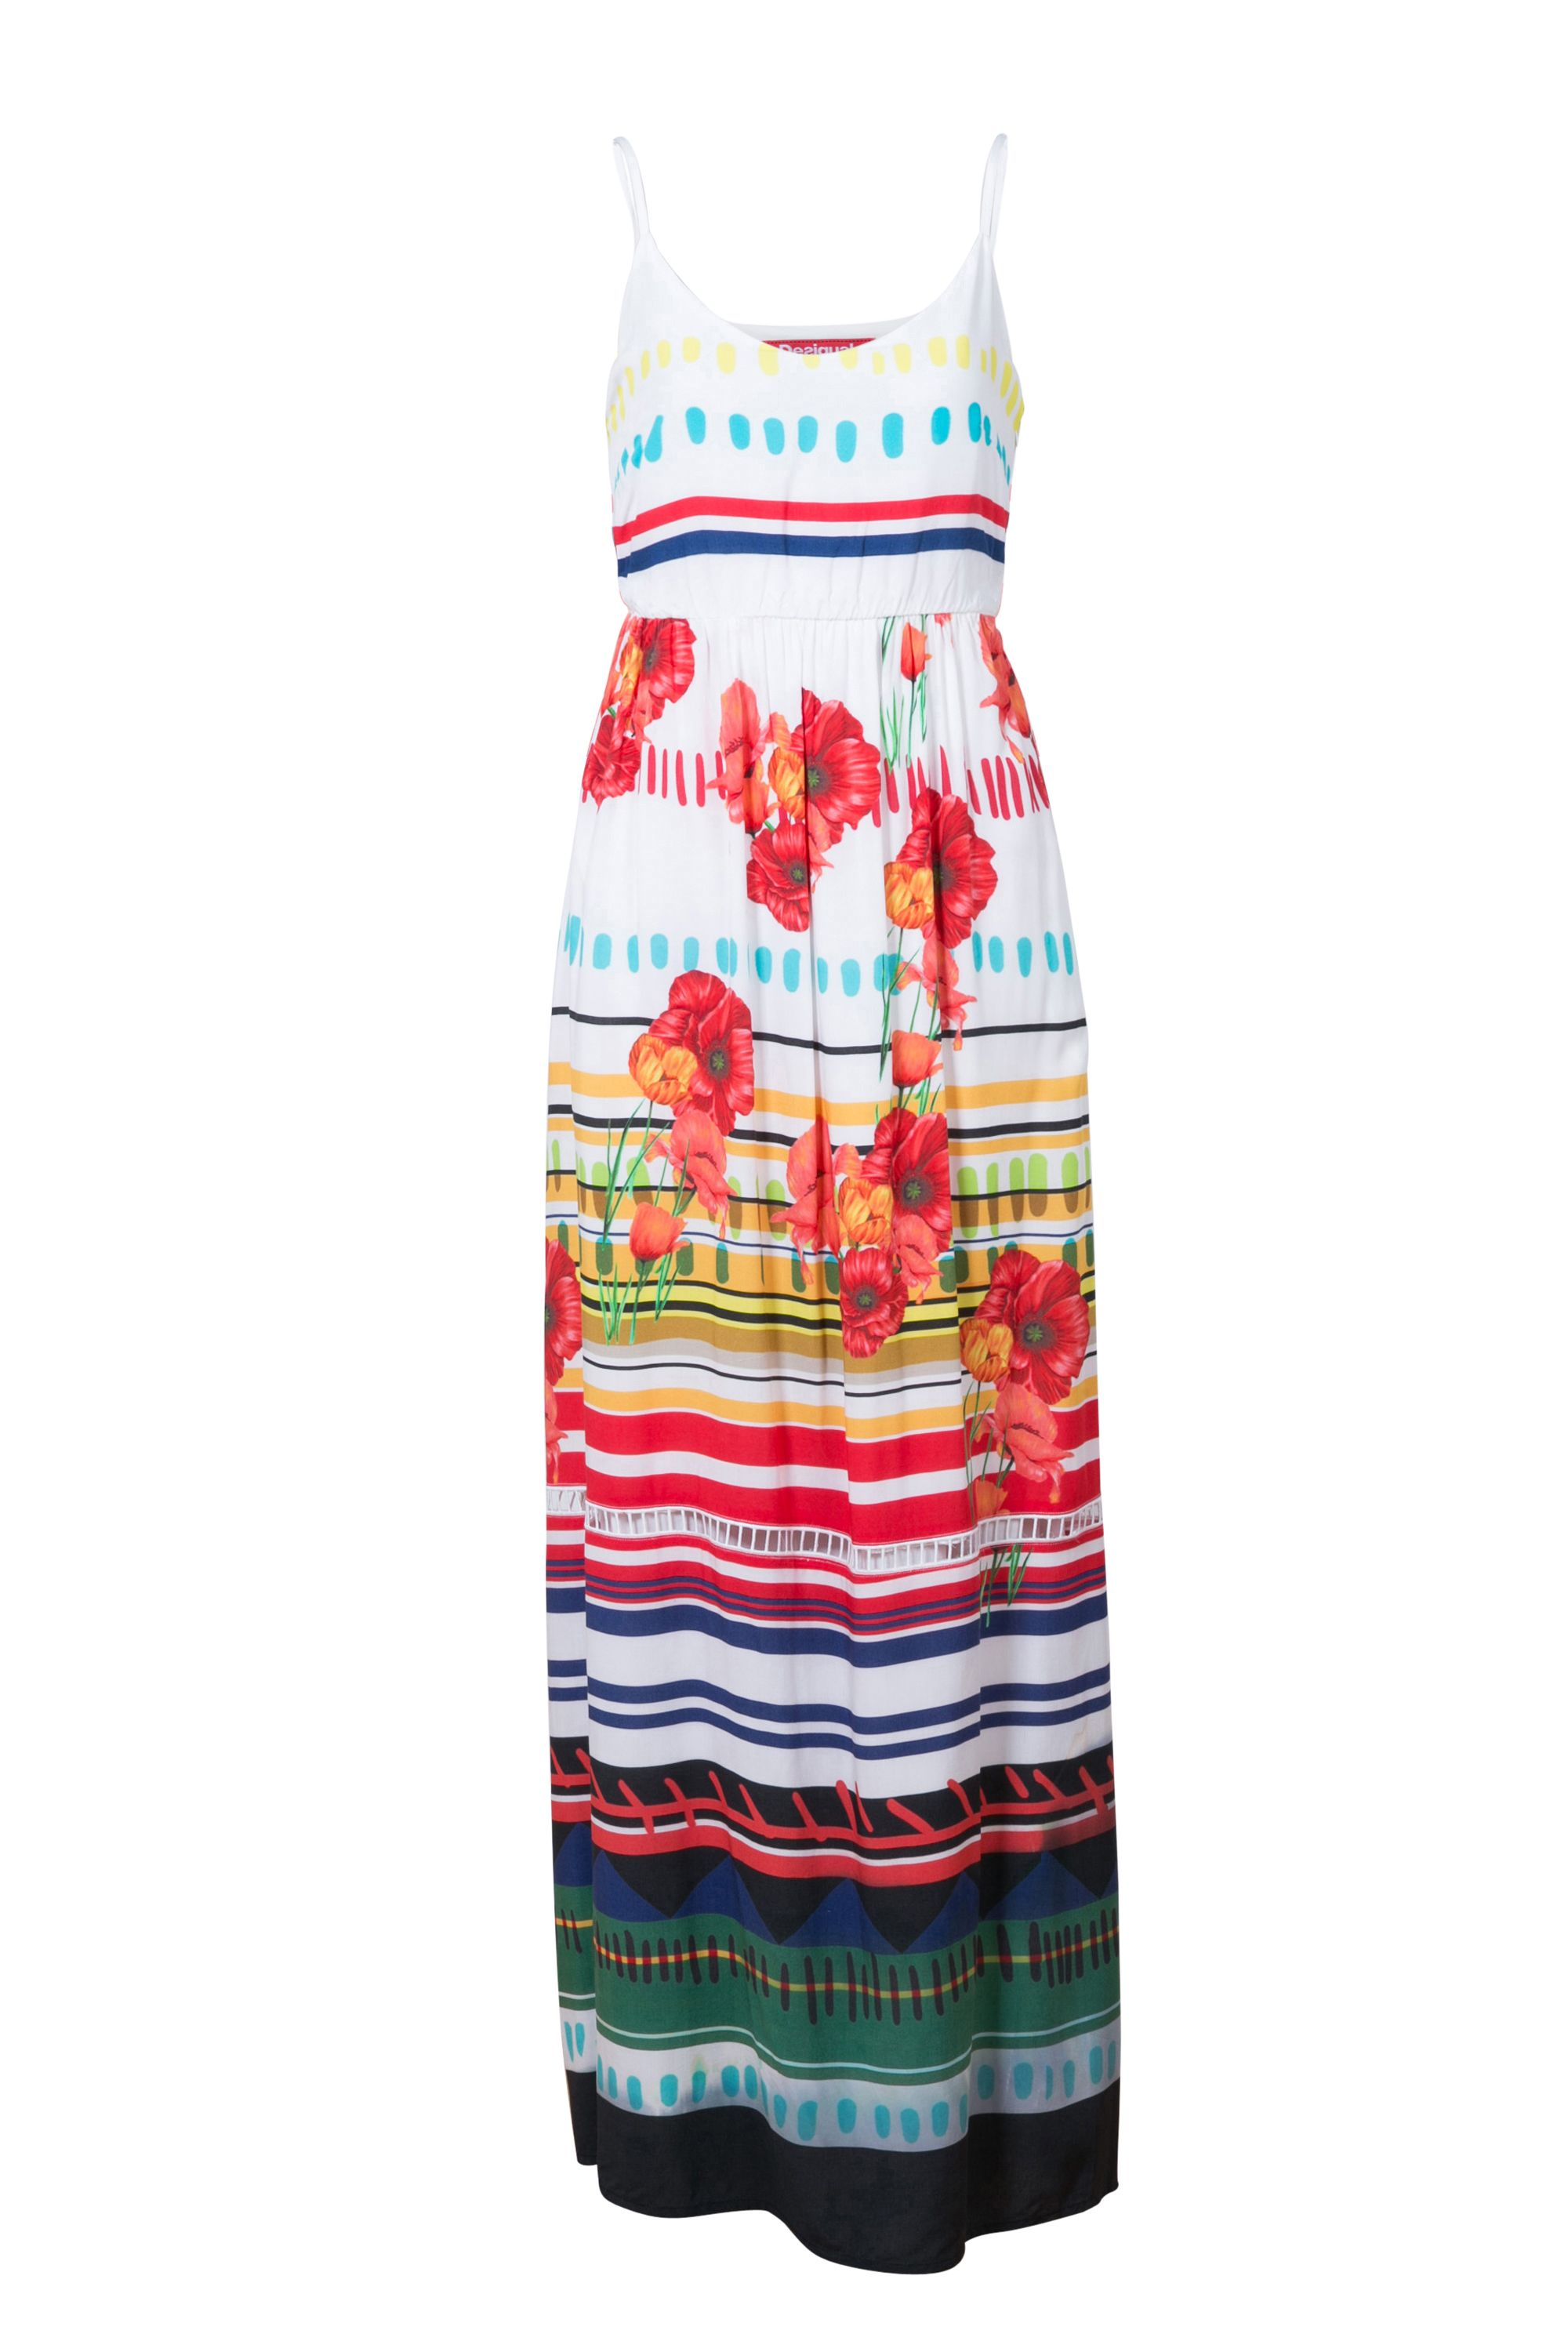 Desigual Dress Sofia, White